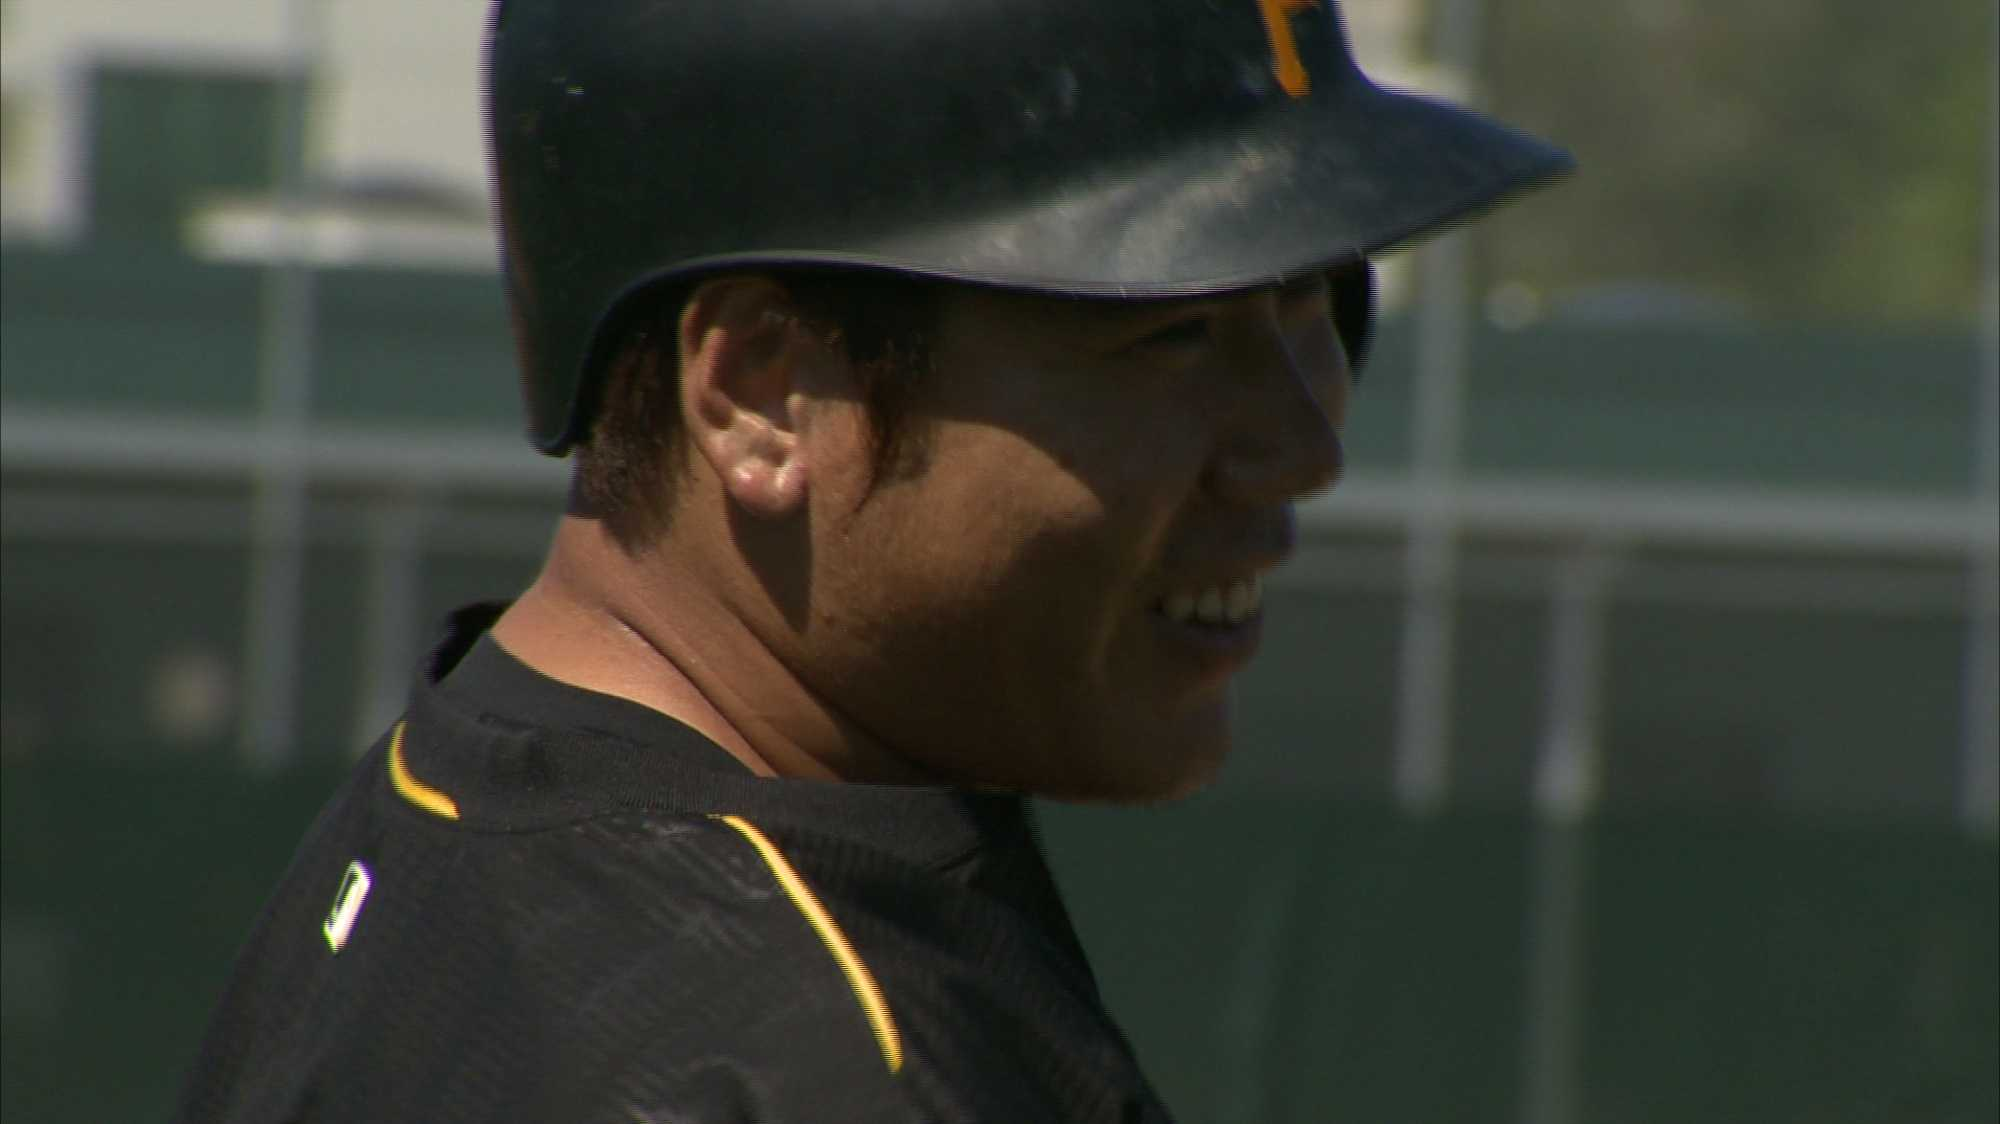 Jung-ho Kang gets eight-month suspended sentence for third DUI arrest